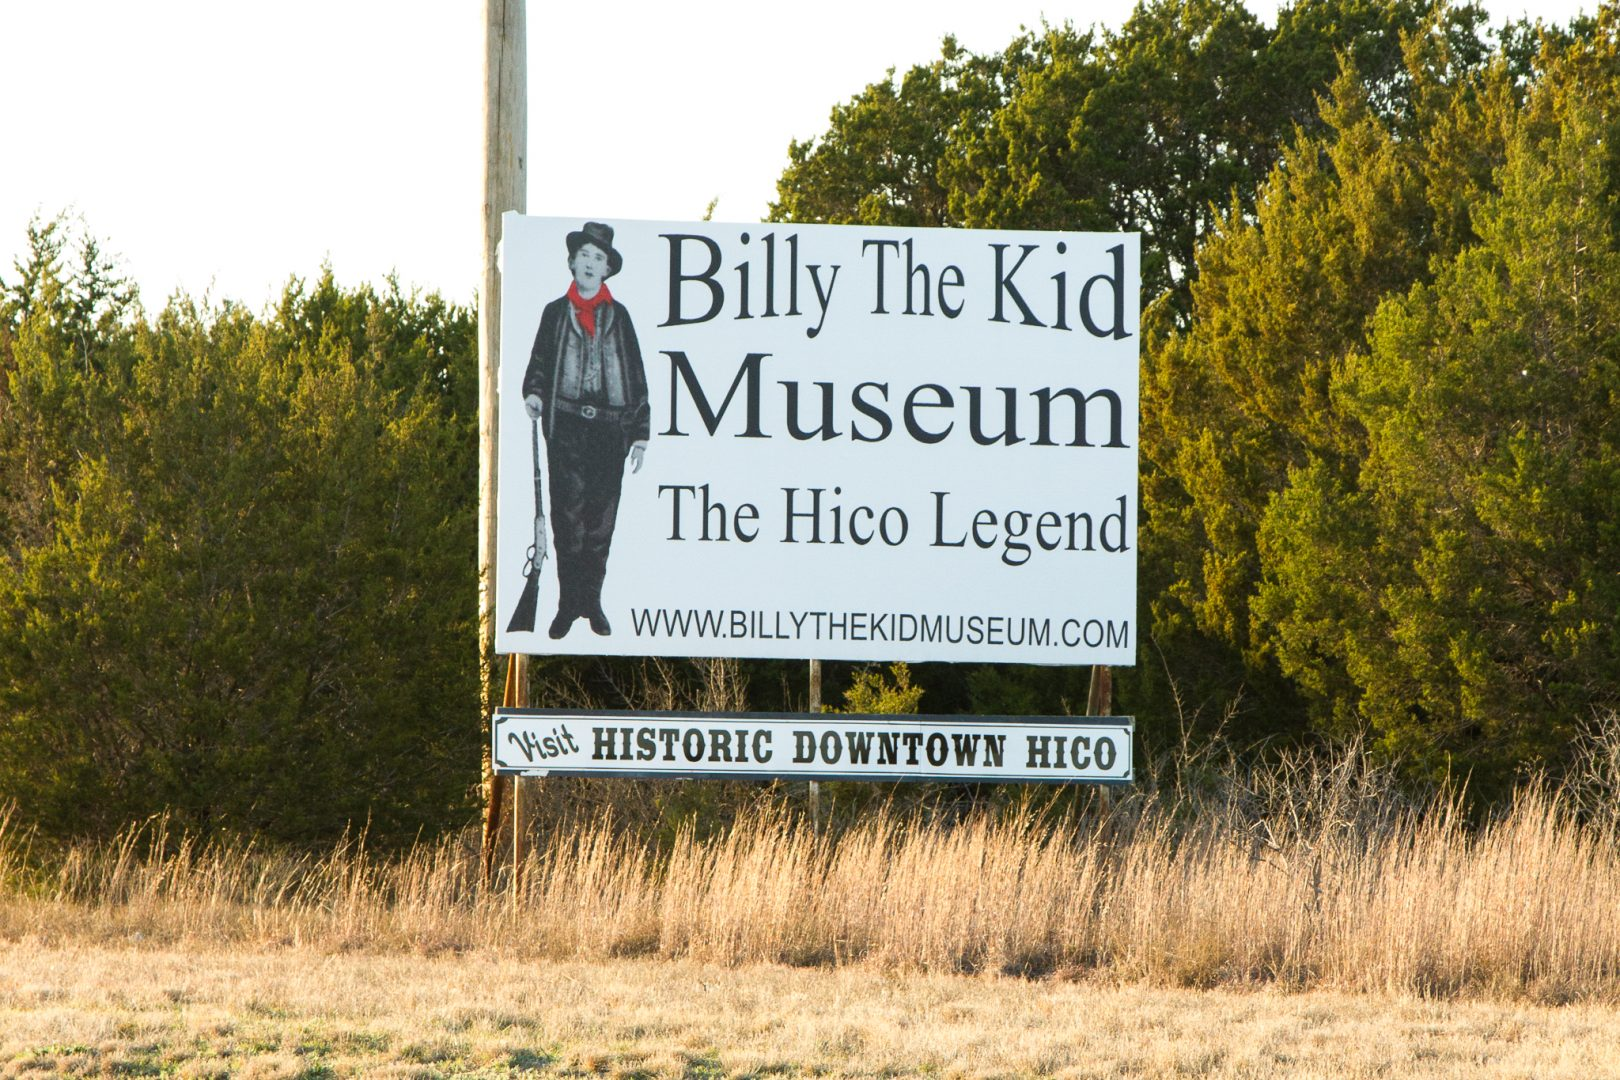 Billy the Kid Museum, Hico, Texas